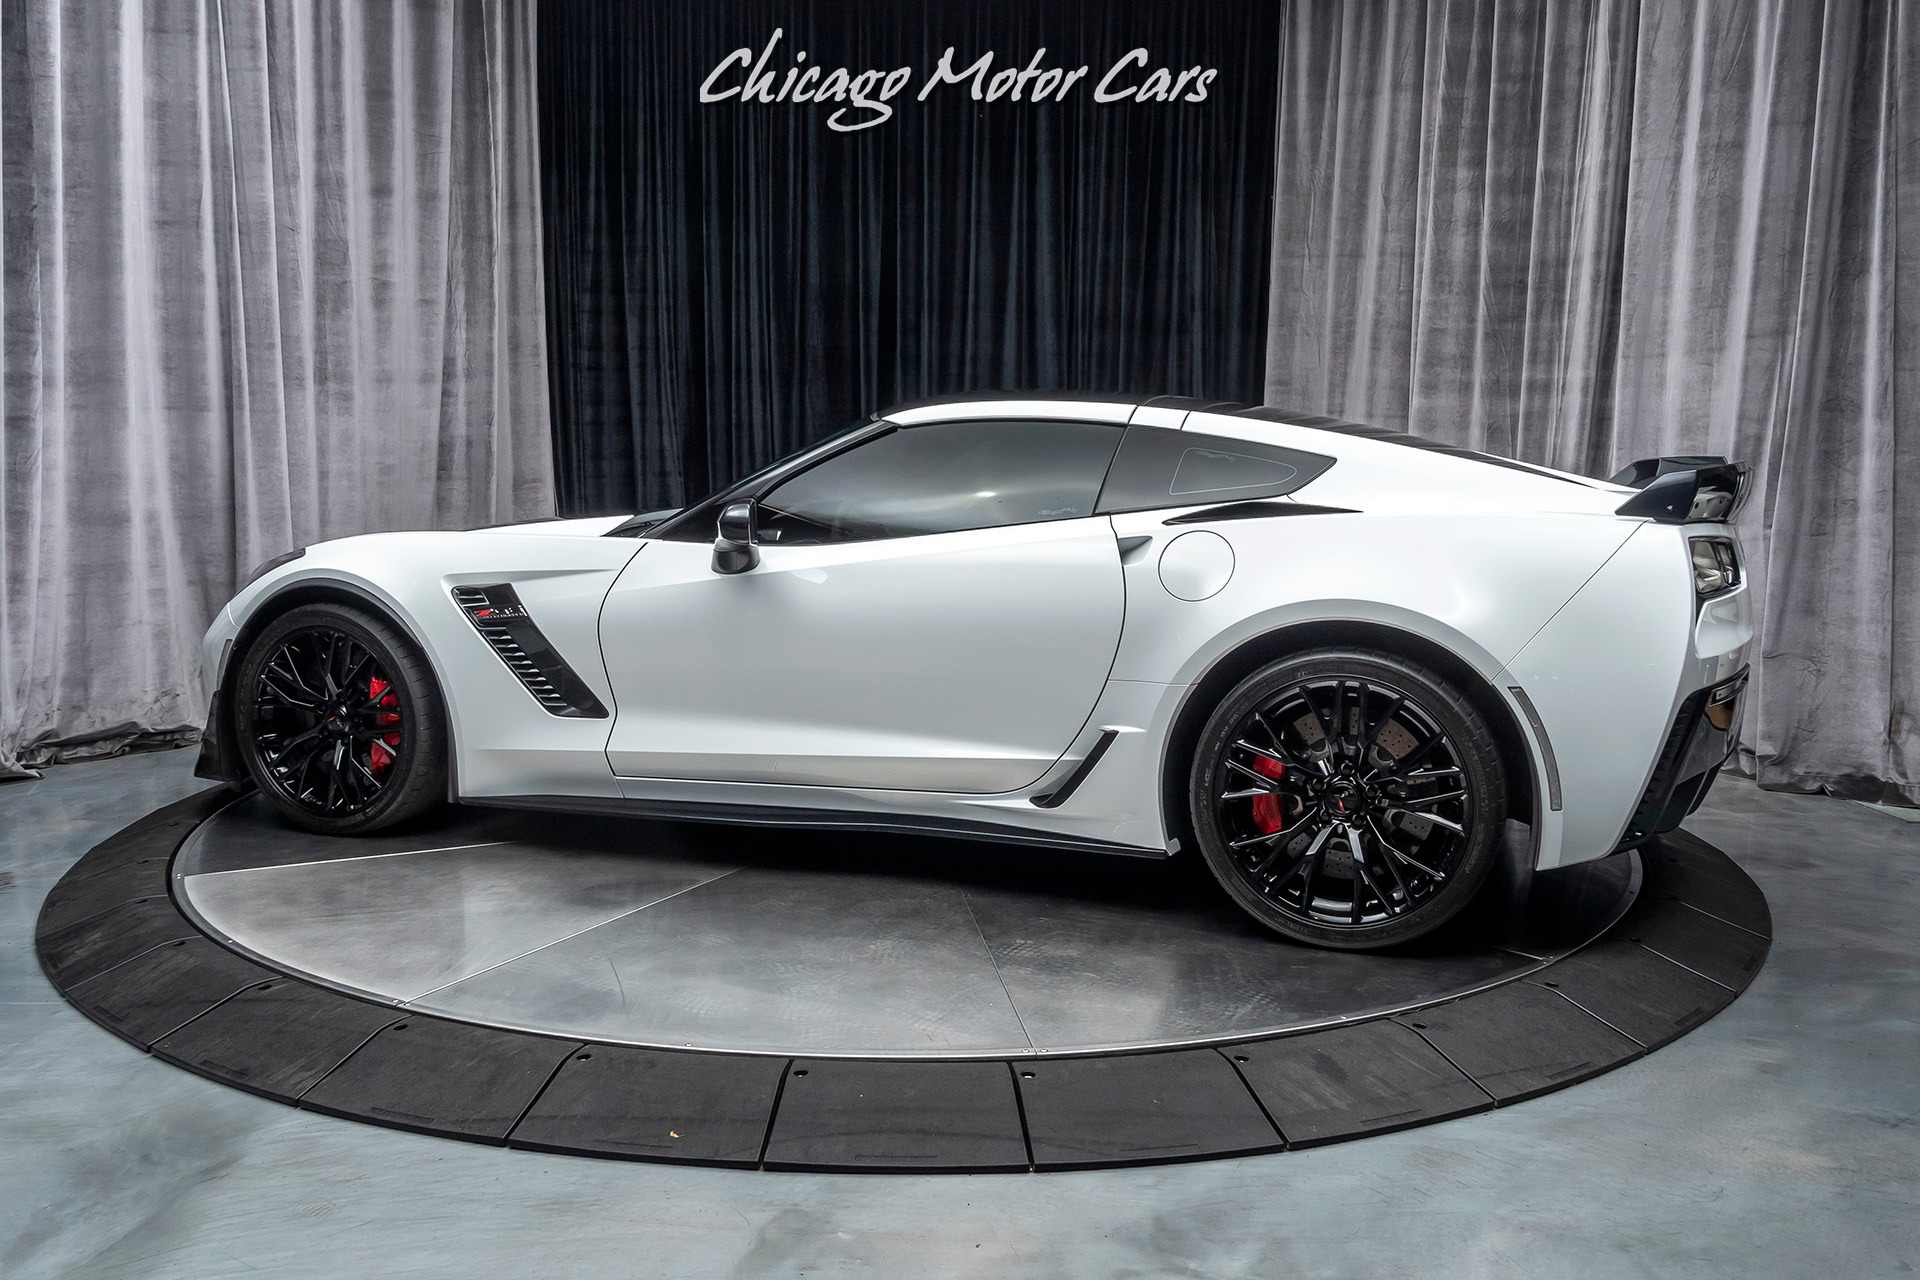 Used-2015-Chevrolet-Corvette-Z06-1LZ-Coupe---TASTEFULLY-MODIFIED-628WHP-Z07-PERFORMANCE-PKG